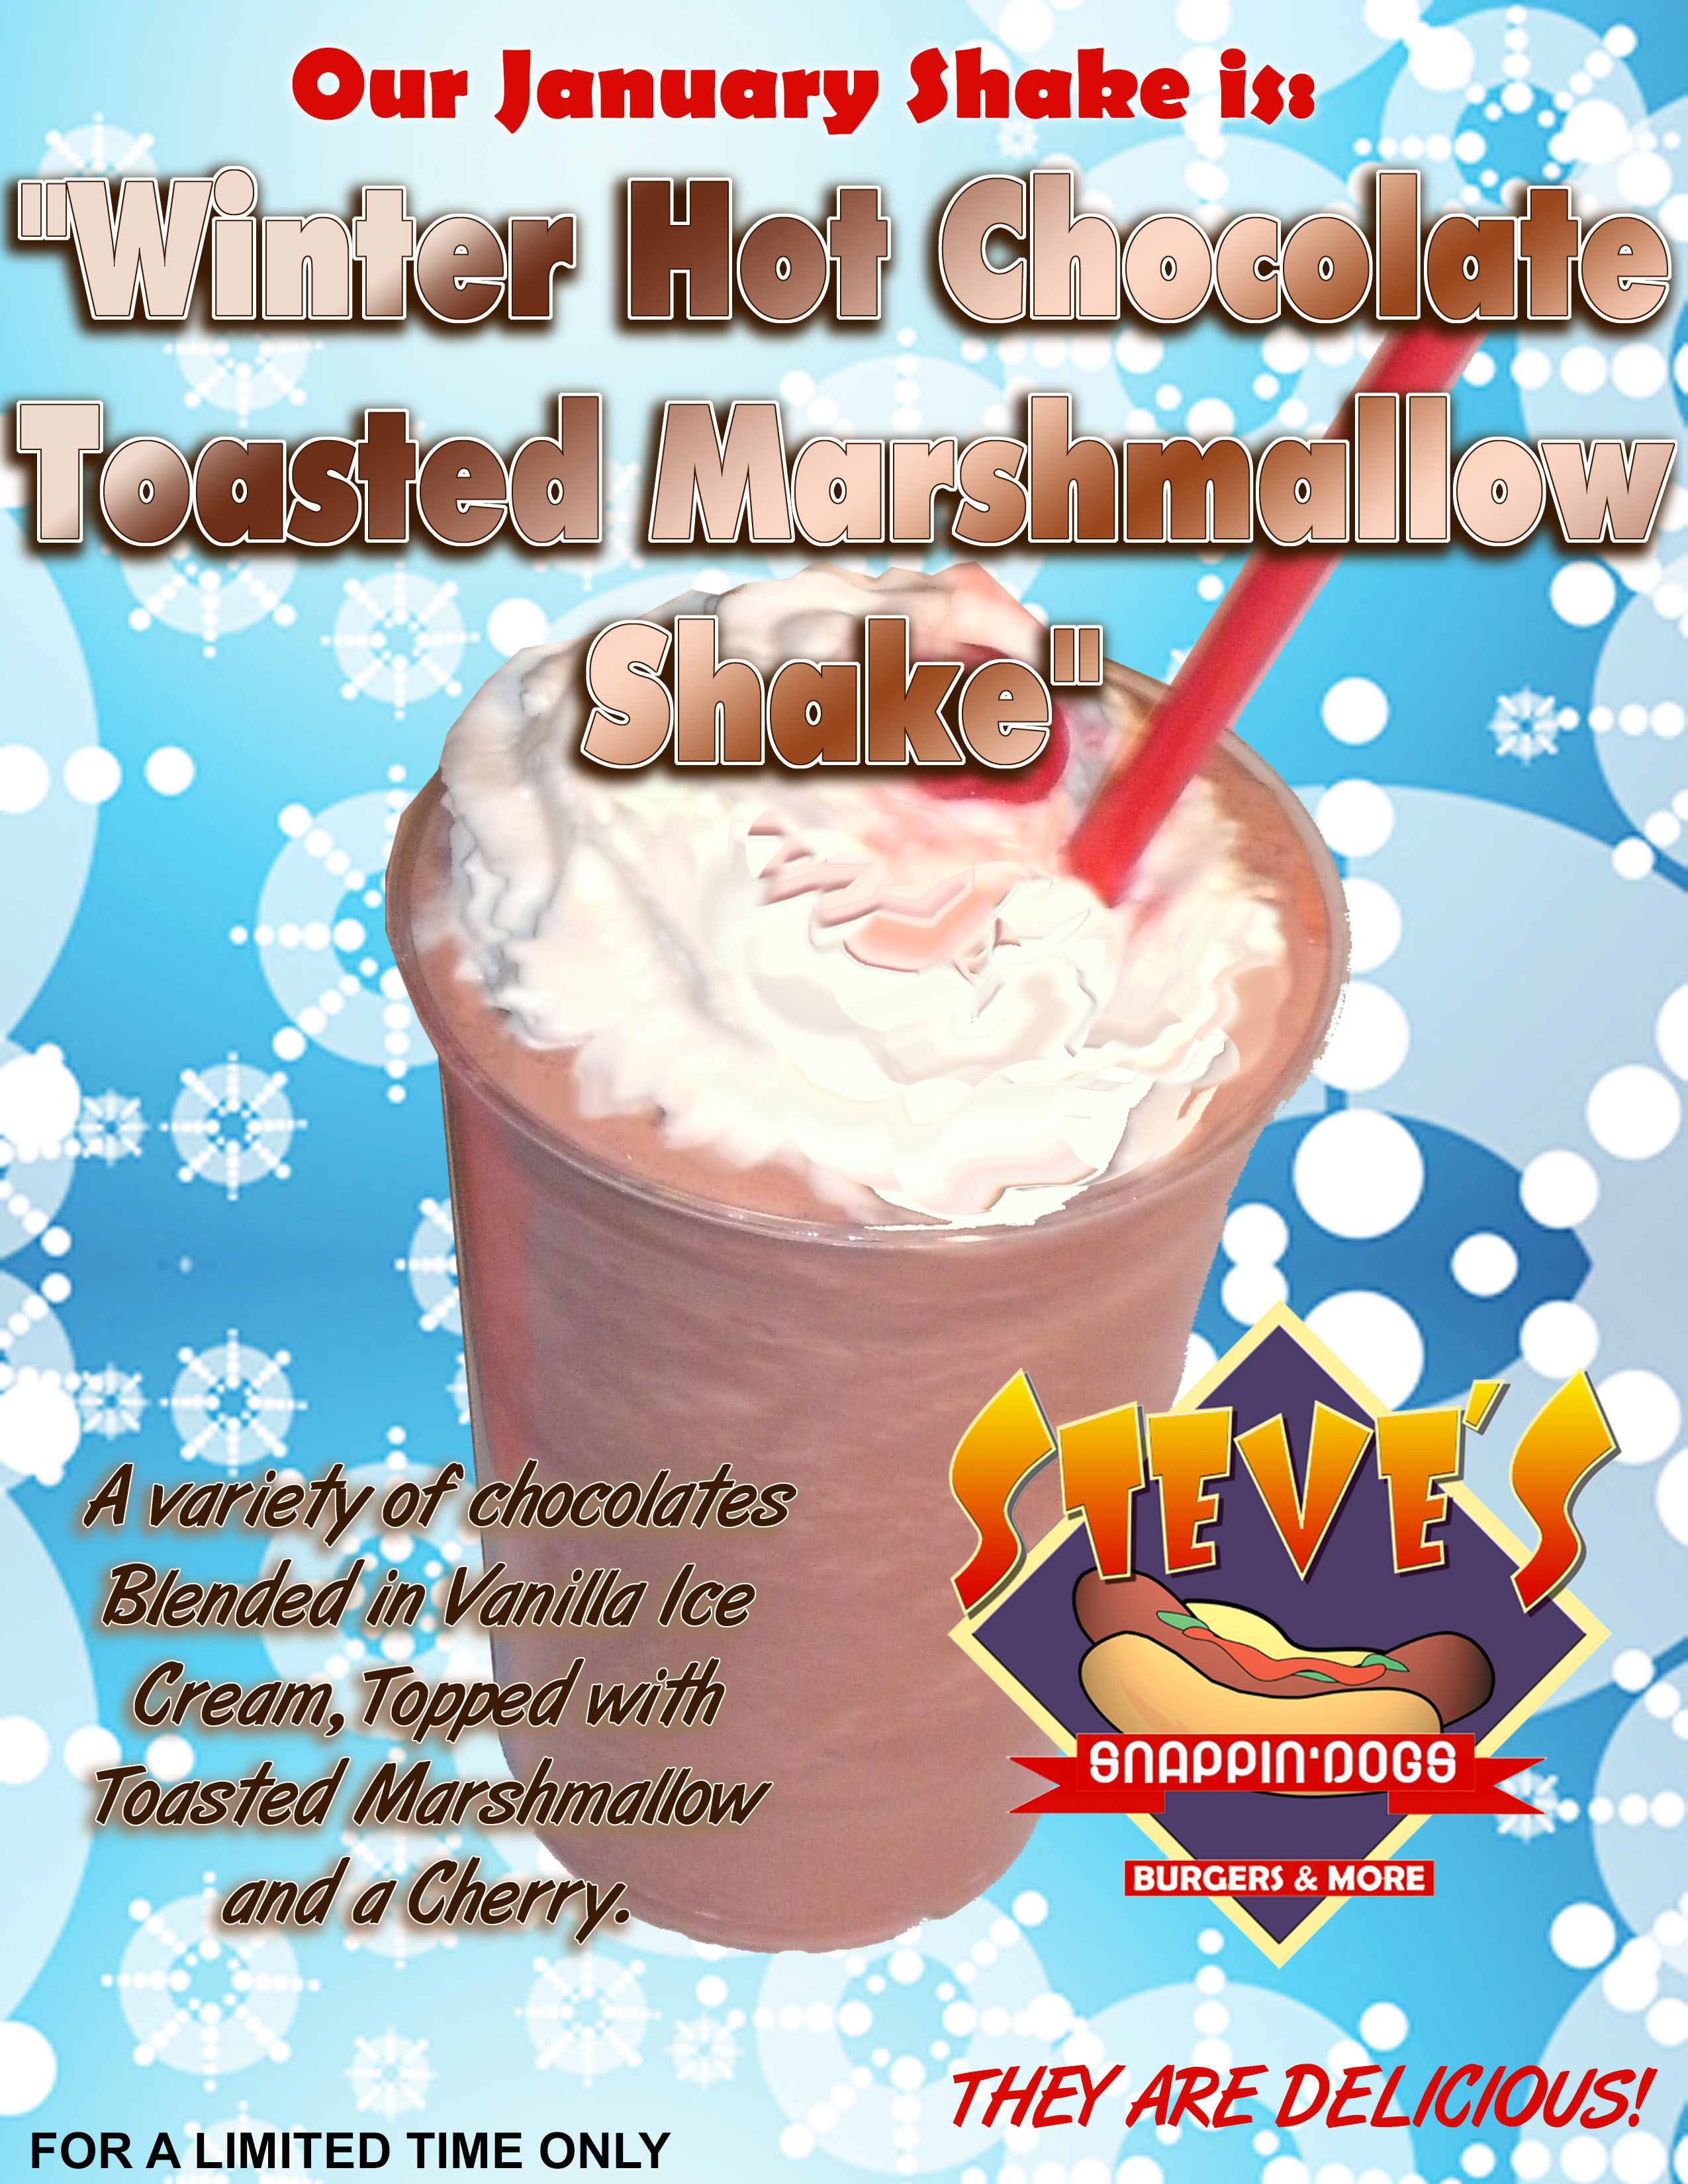 Our January Shake of the Month is Winter Hot Chocolate Toasted Marshmallow Shake